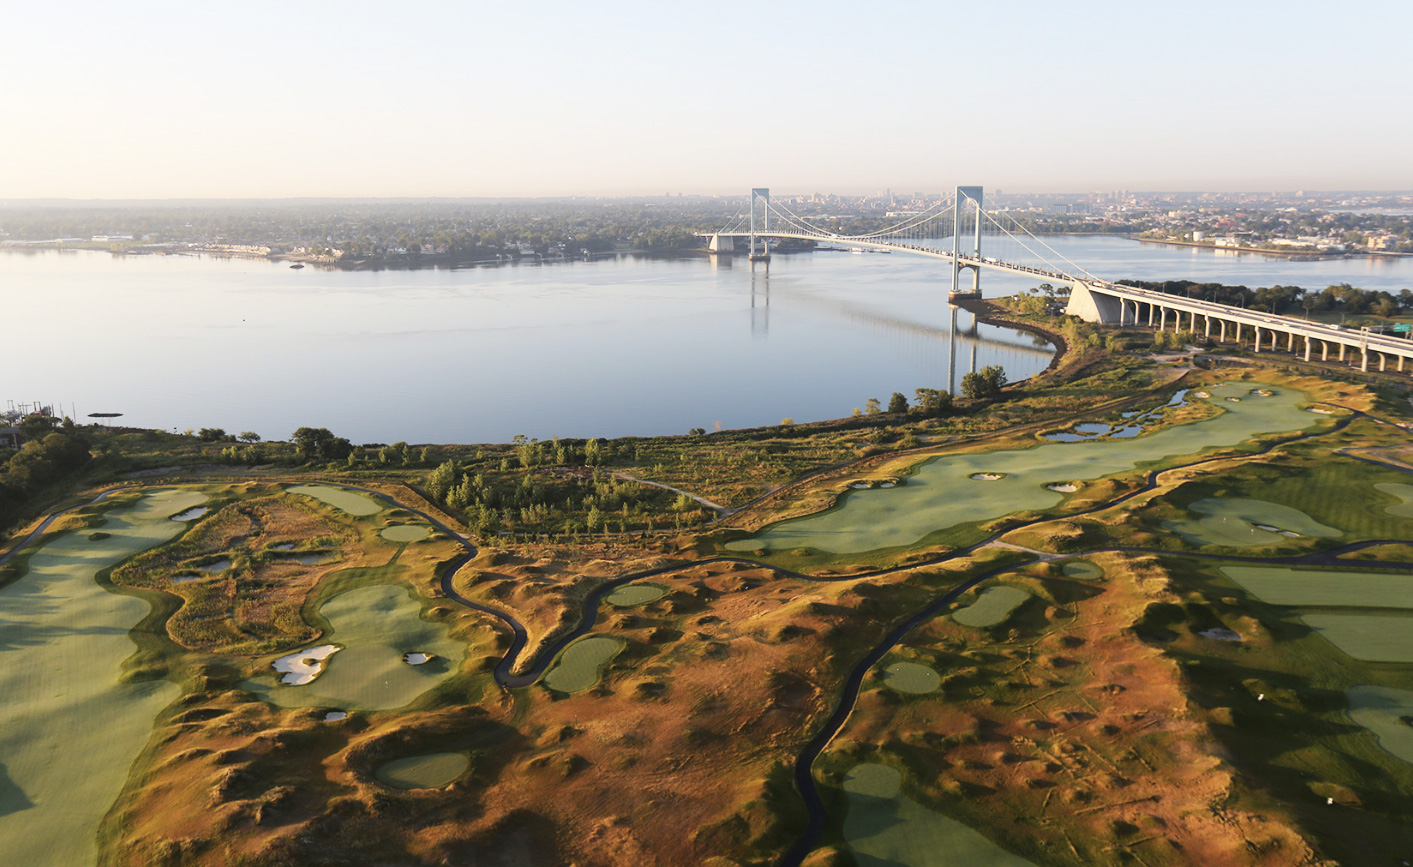 Donald Trump's New Luxury Golf Course Opens Atop a Former ...